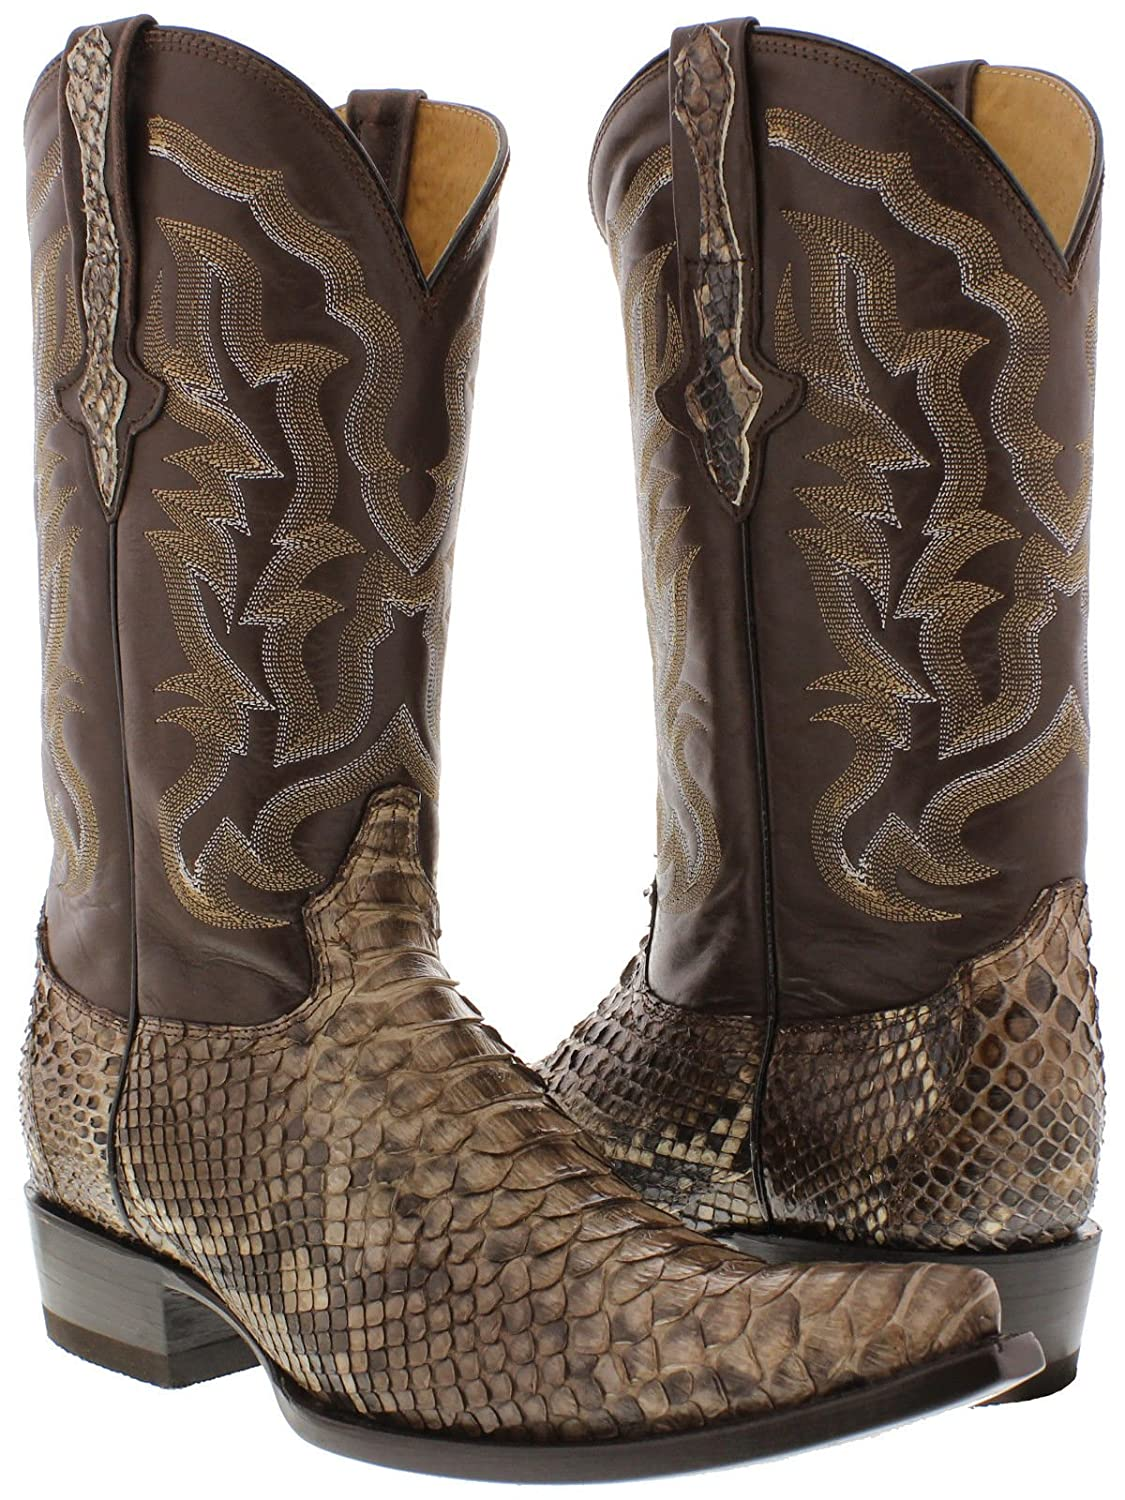 Cowboy Professional - Men's Brown Genuine Python Snake Skin Leather Cowboy Boots 3X Toe